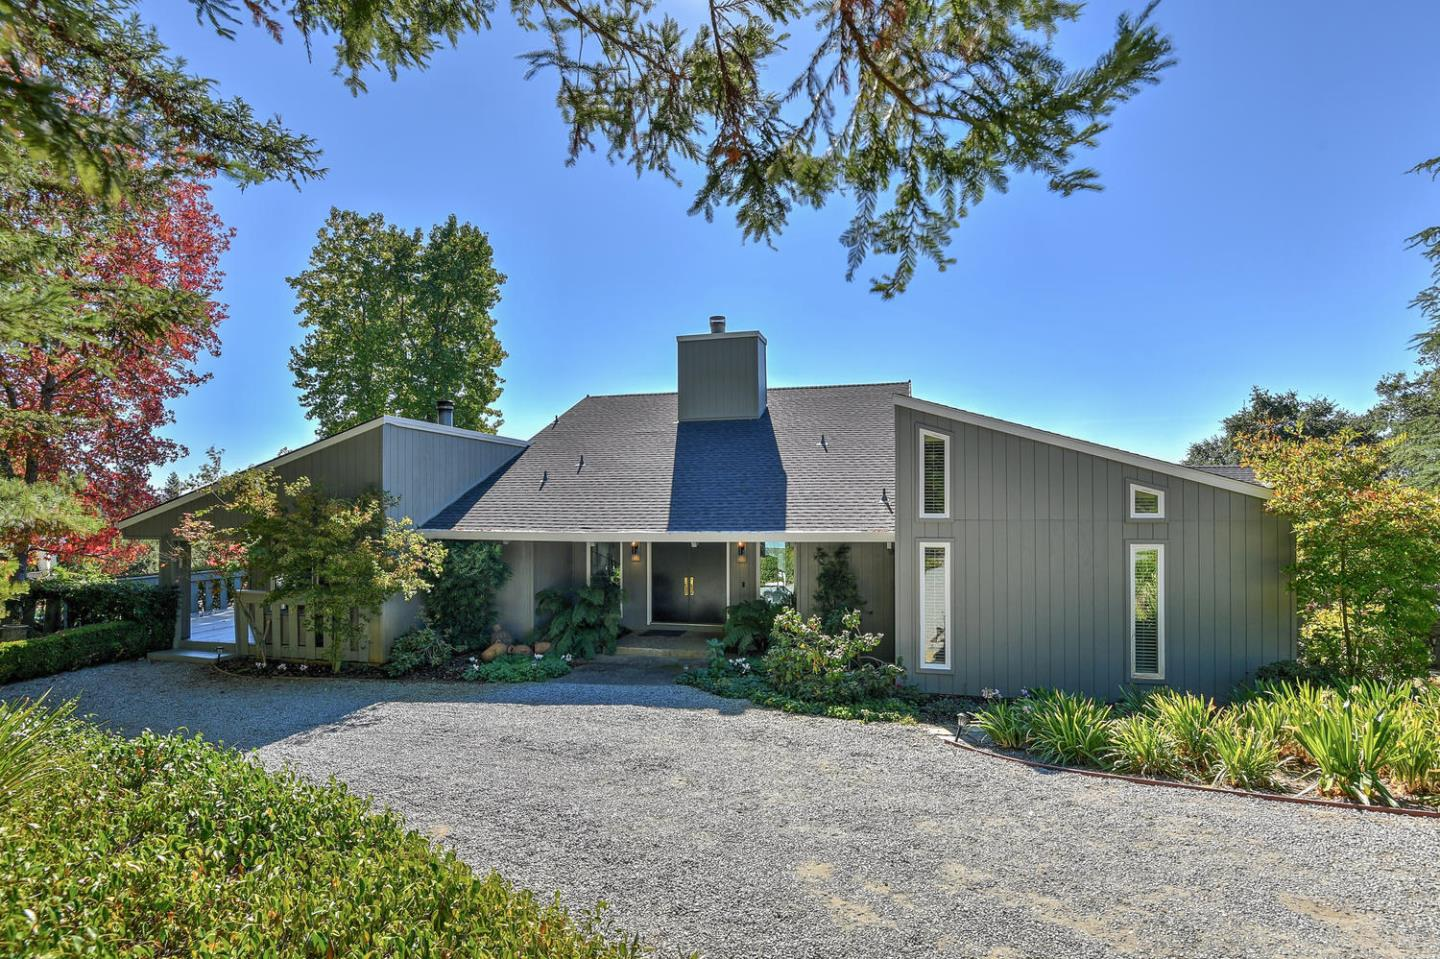 Property for sale at 3 N Name RD, Los Gatos,  CA 95033